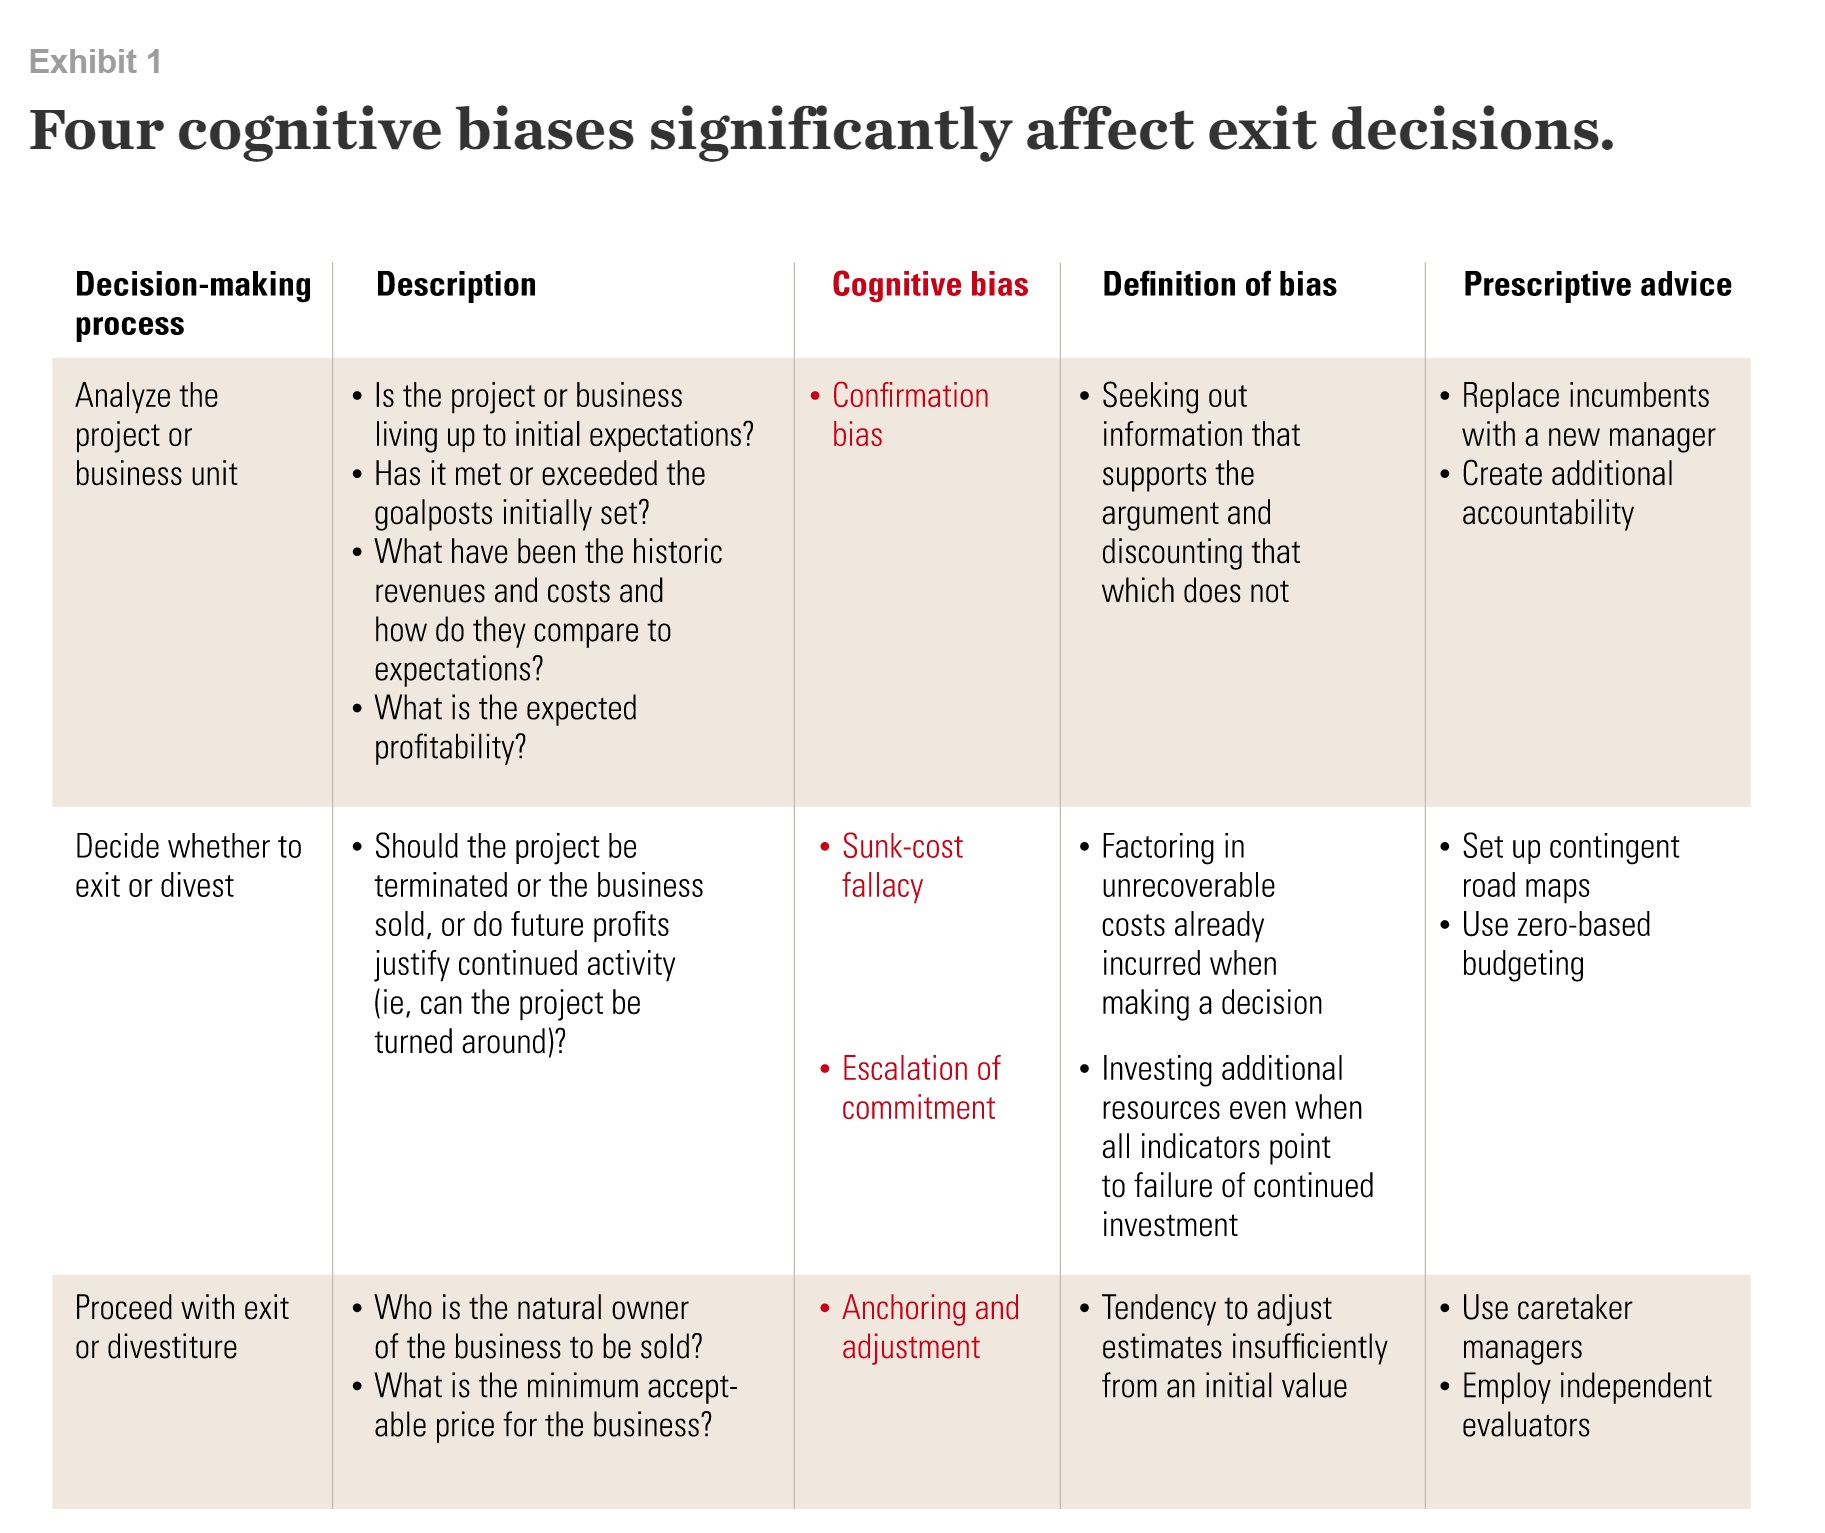 Four cognitive biases significantly affect exit decisions.